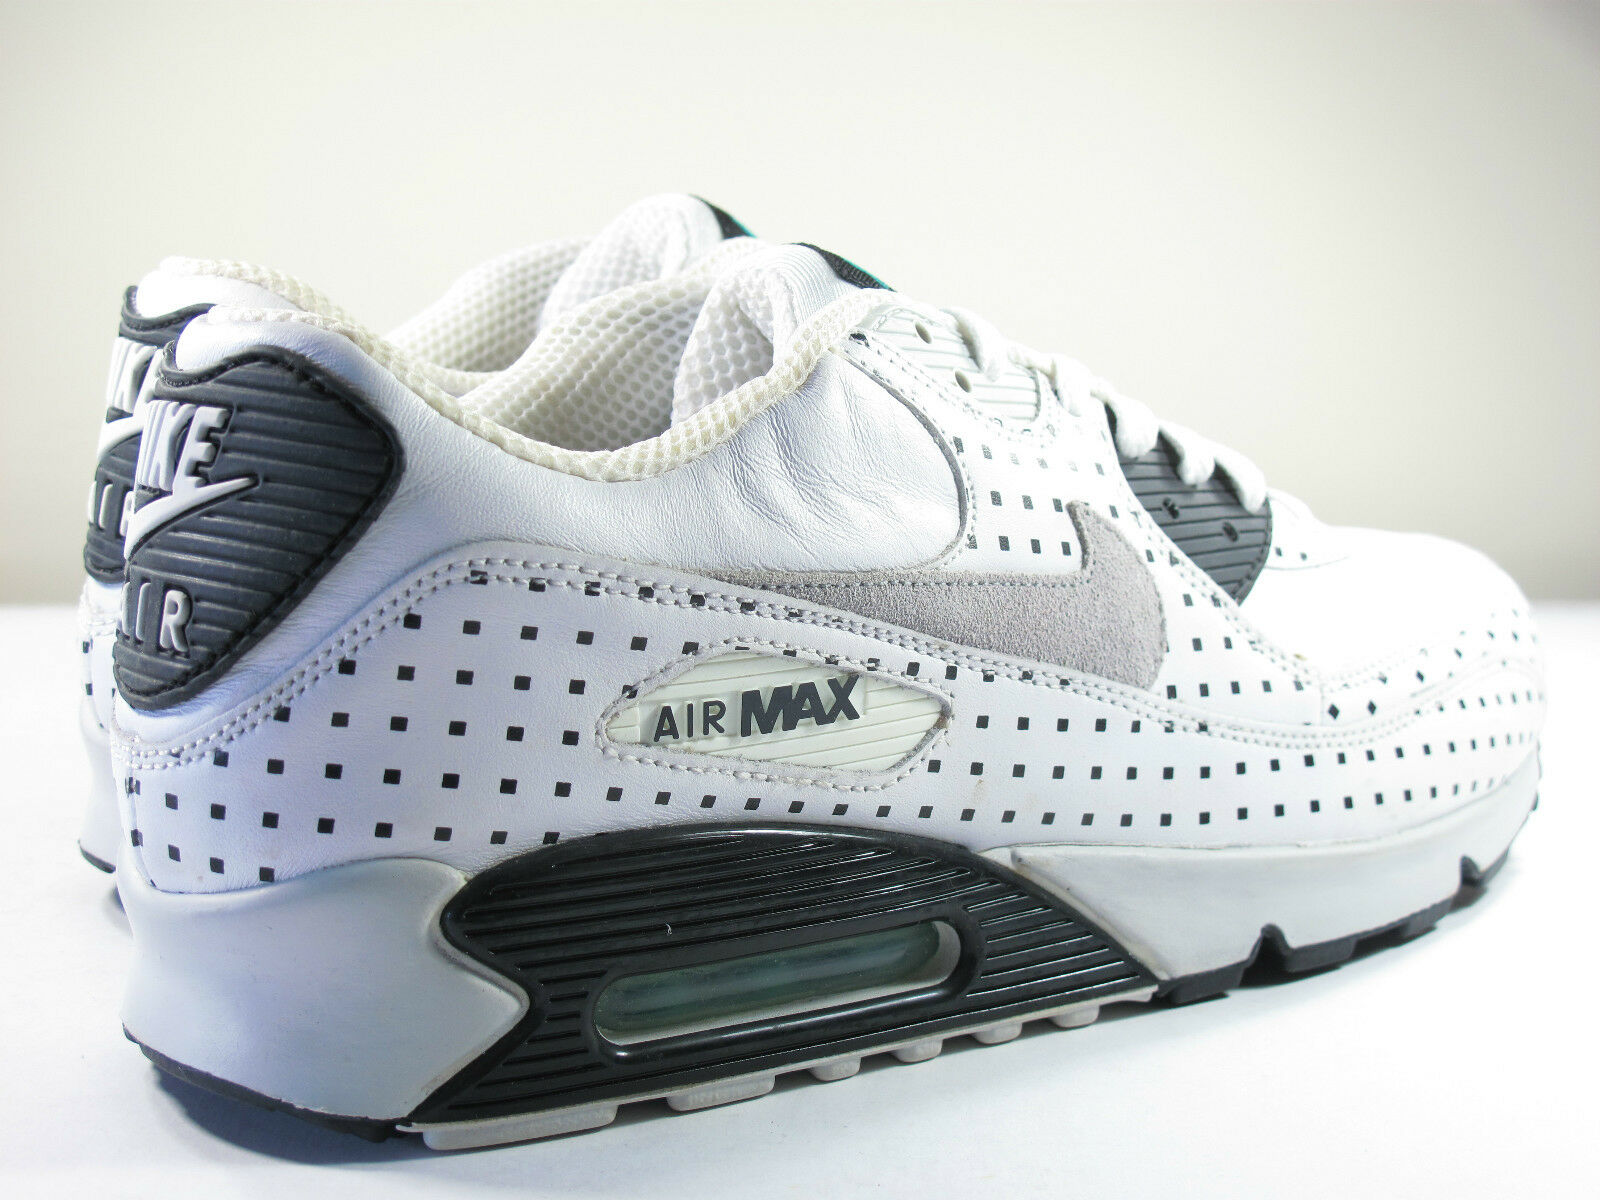 DS NIKE 2006 AIR MAX 90 POLKA AZURE 12 HYPERFUSE ATMOS INFRARED HUF 1 185 95 98